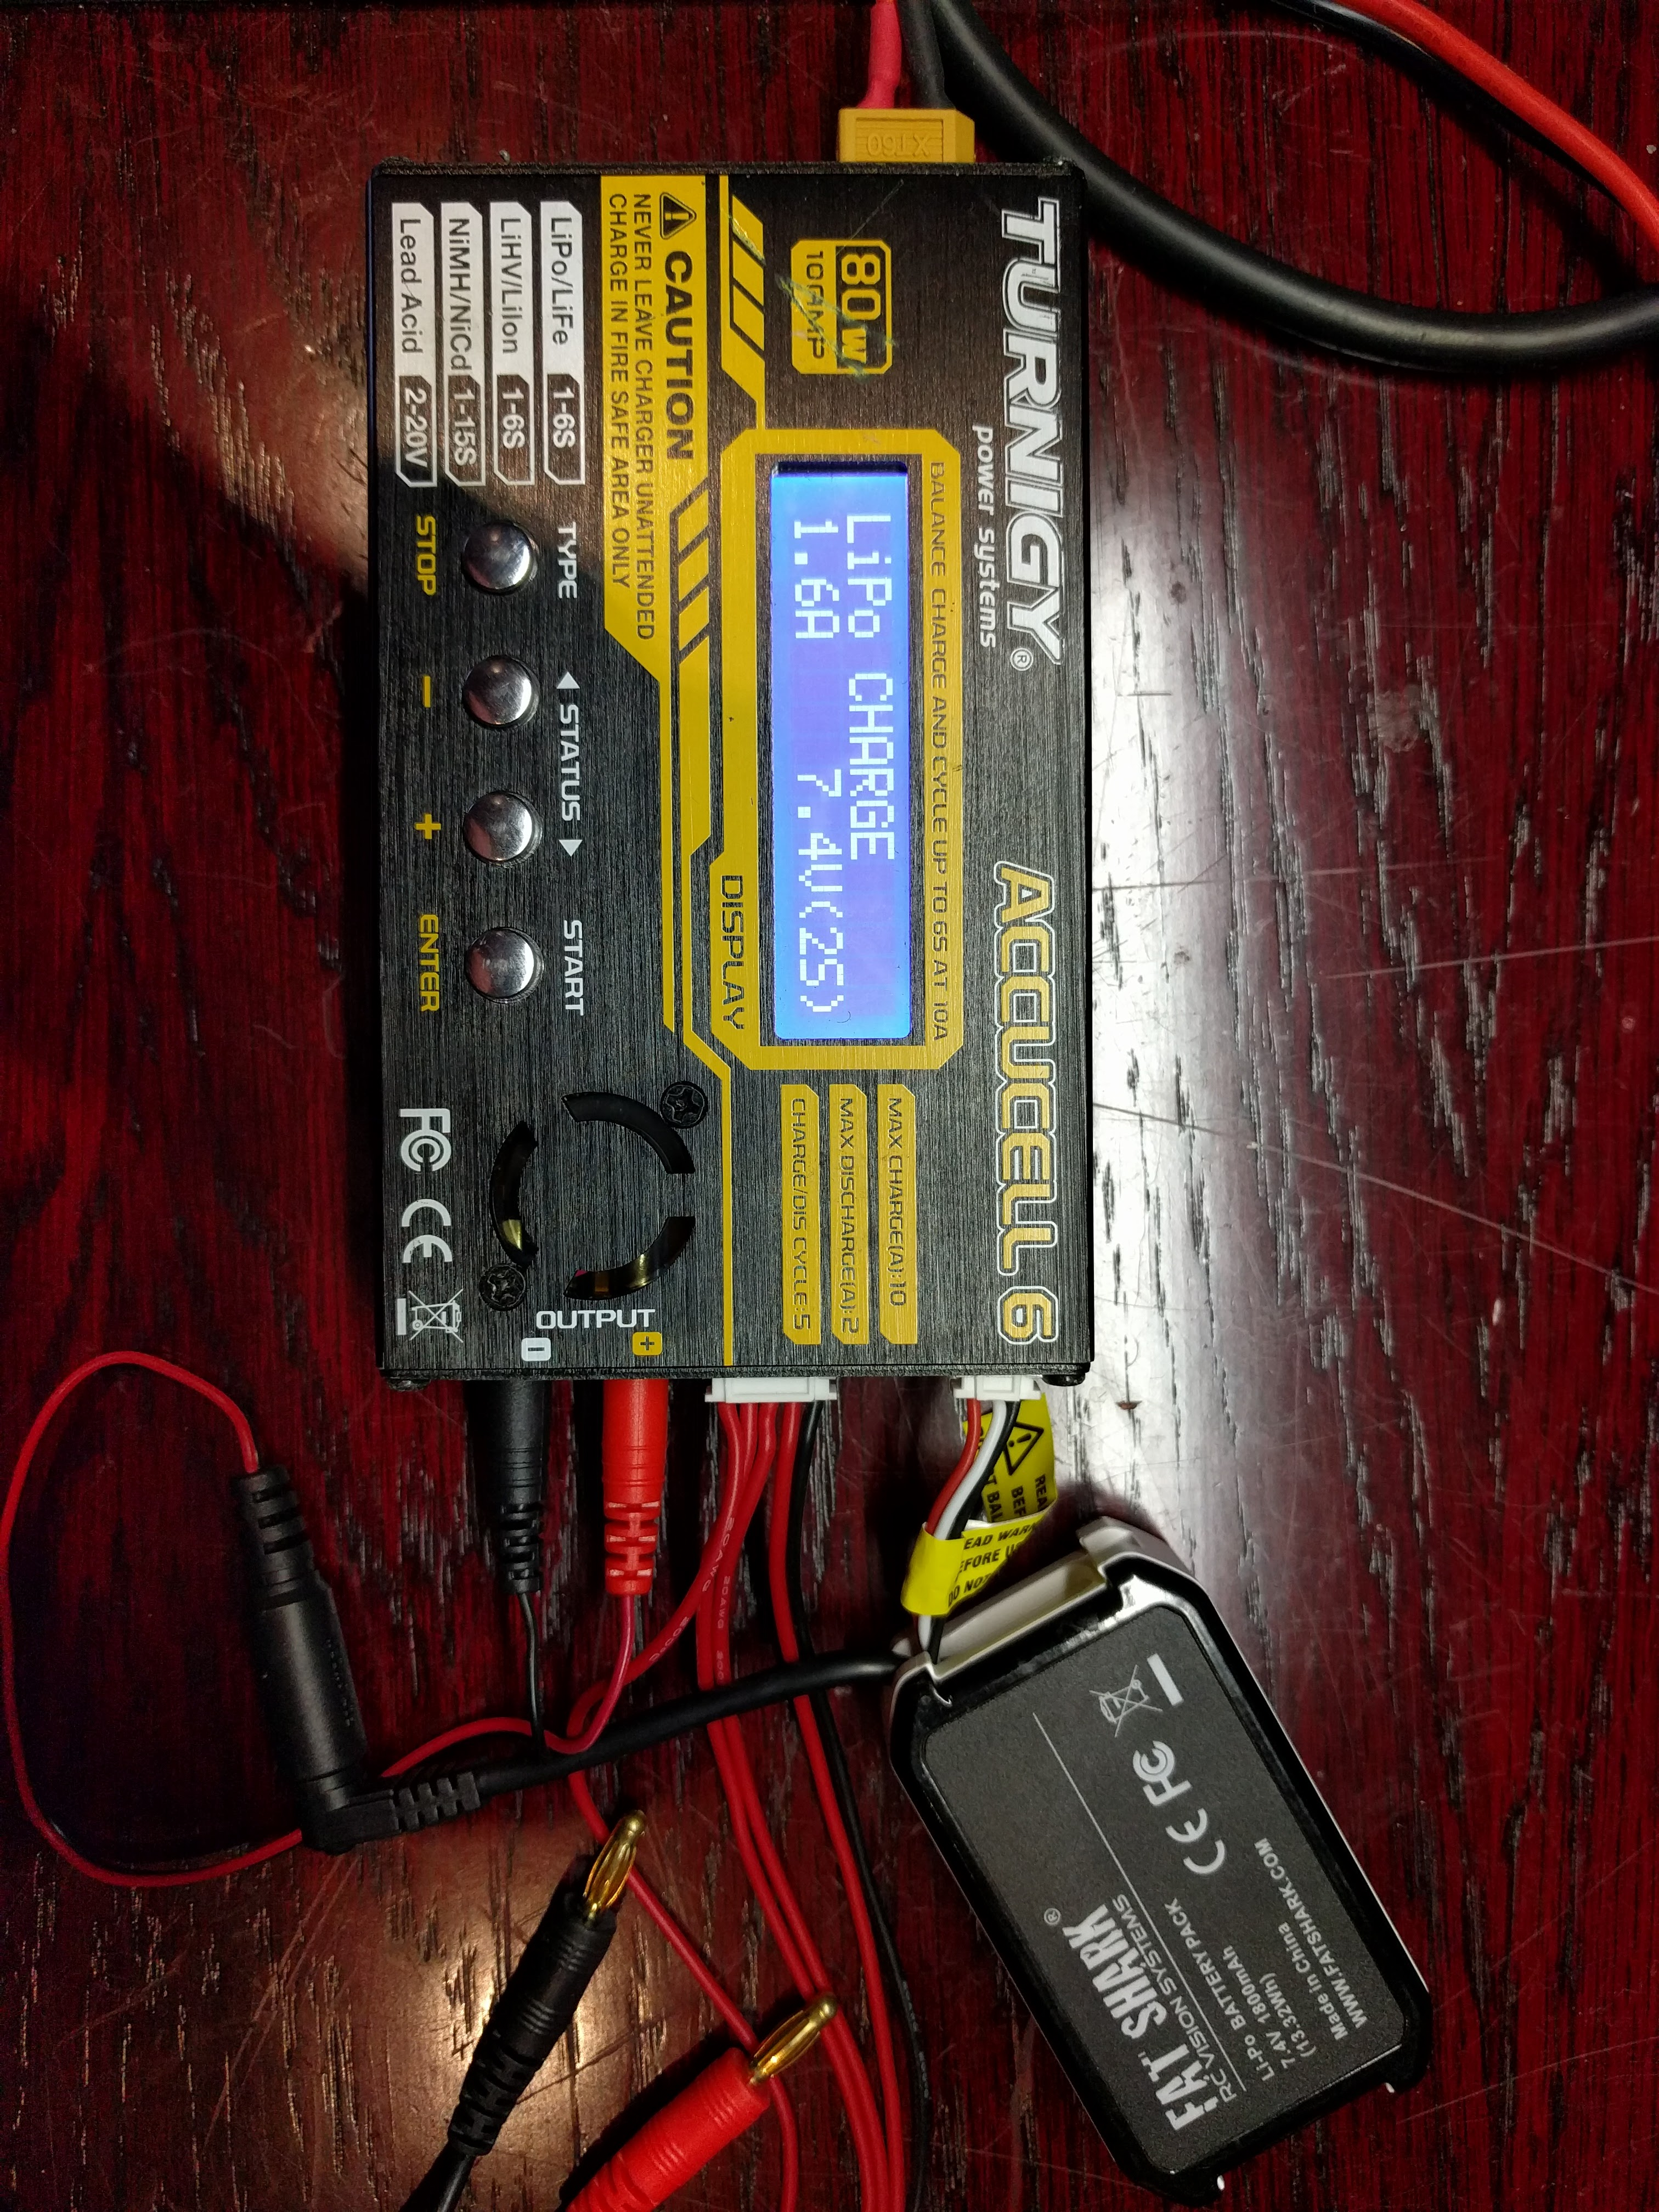 How To Charge The Fatshark Battery 74v 1600mah Properly Phaser Fpv Fat Shark Camera Wire Diagram Img 20160615 221740